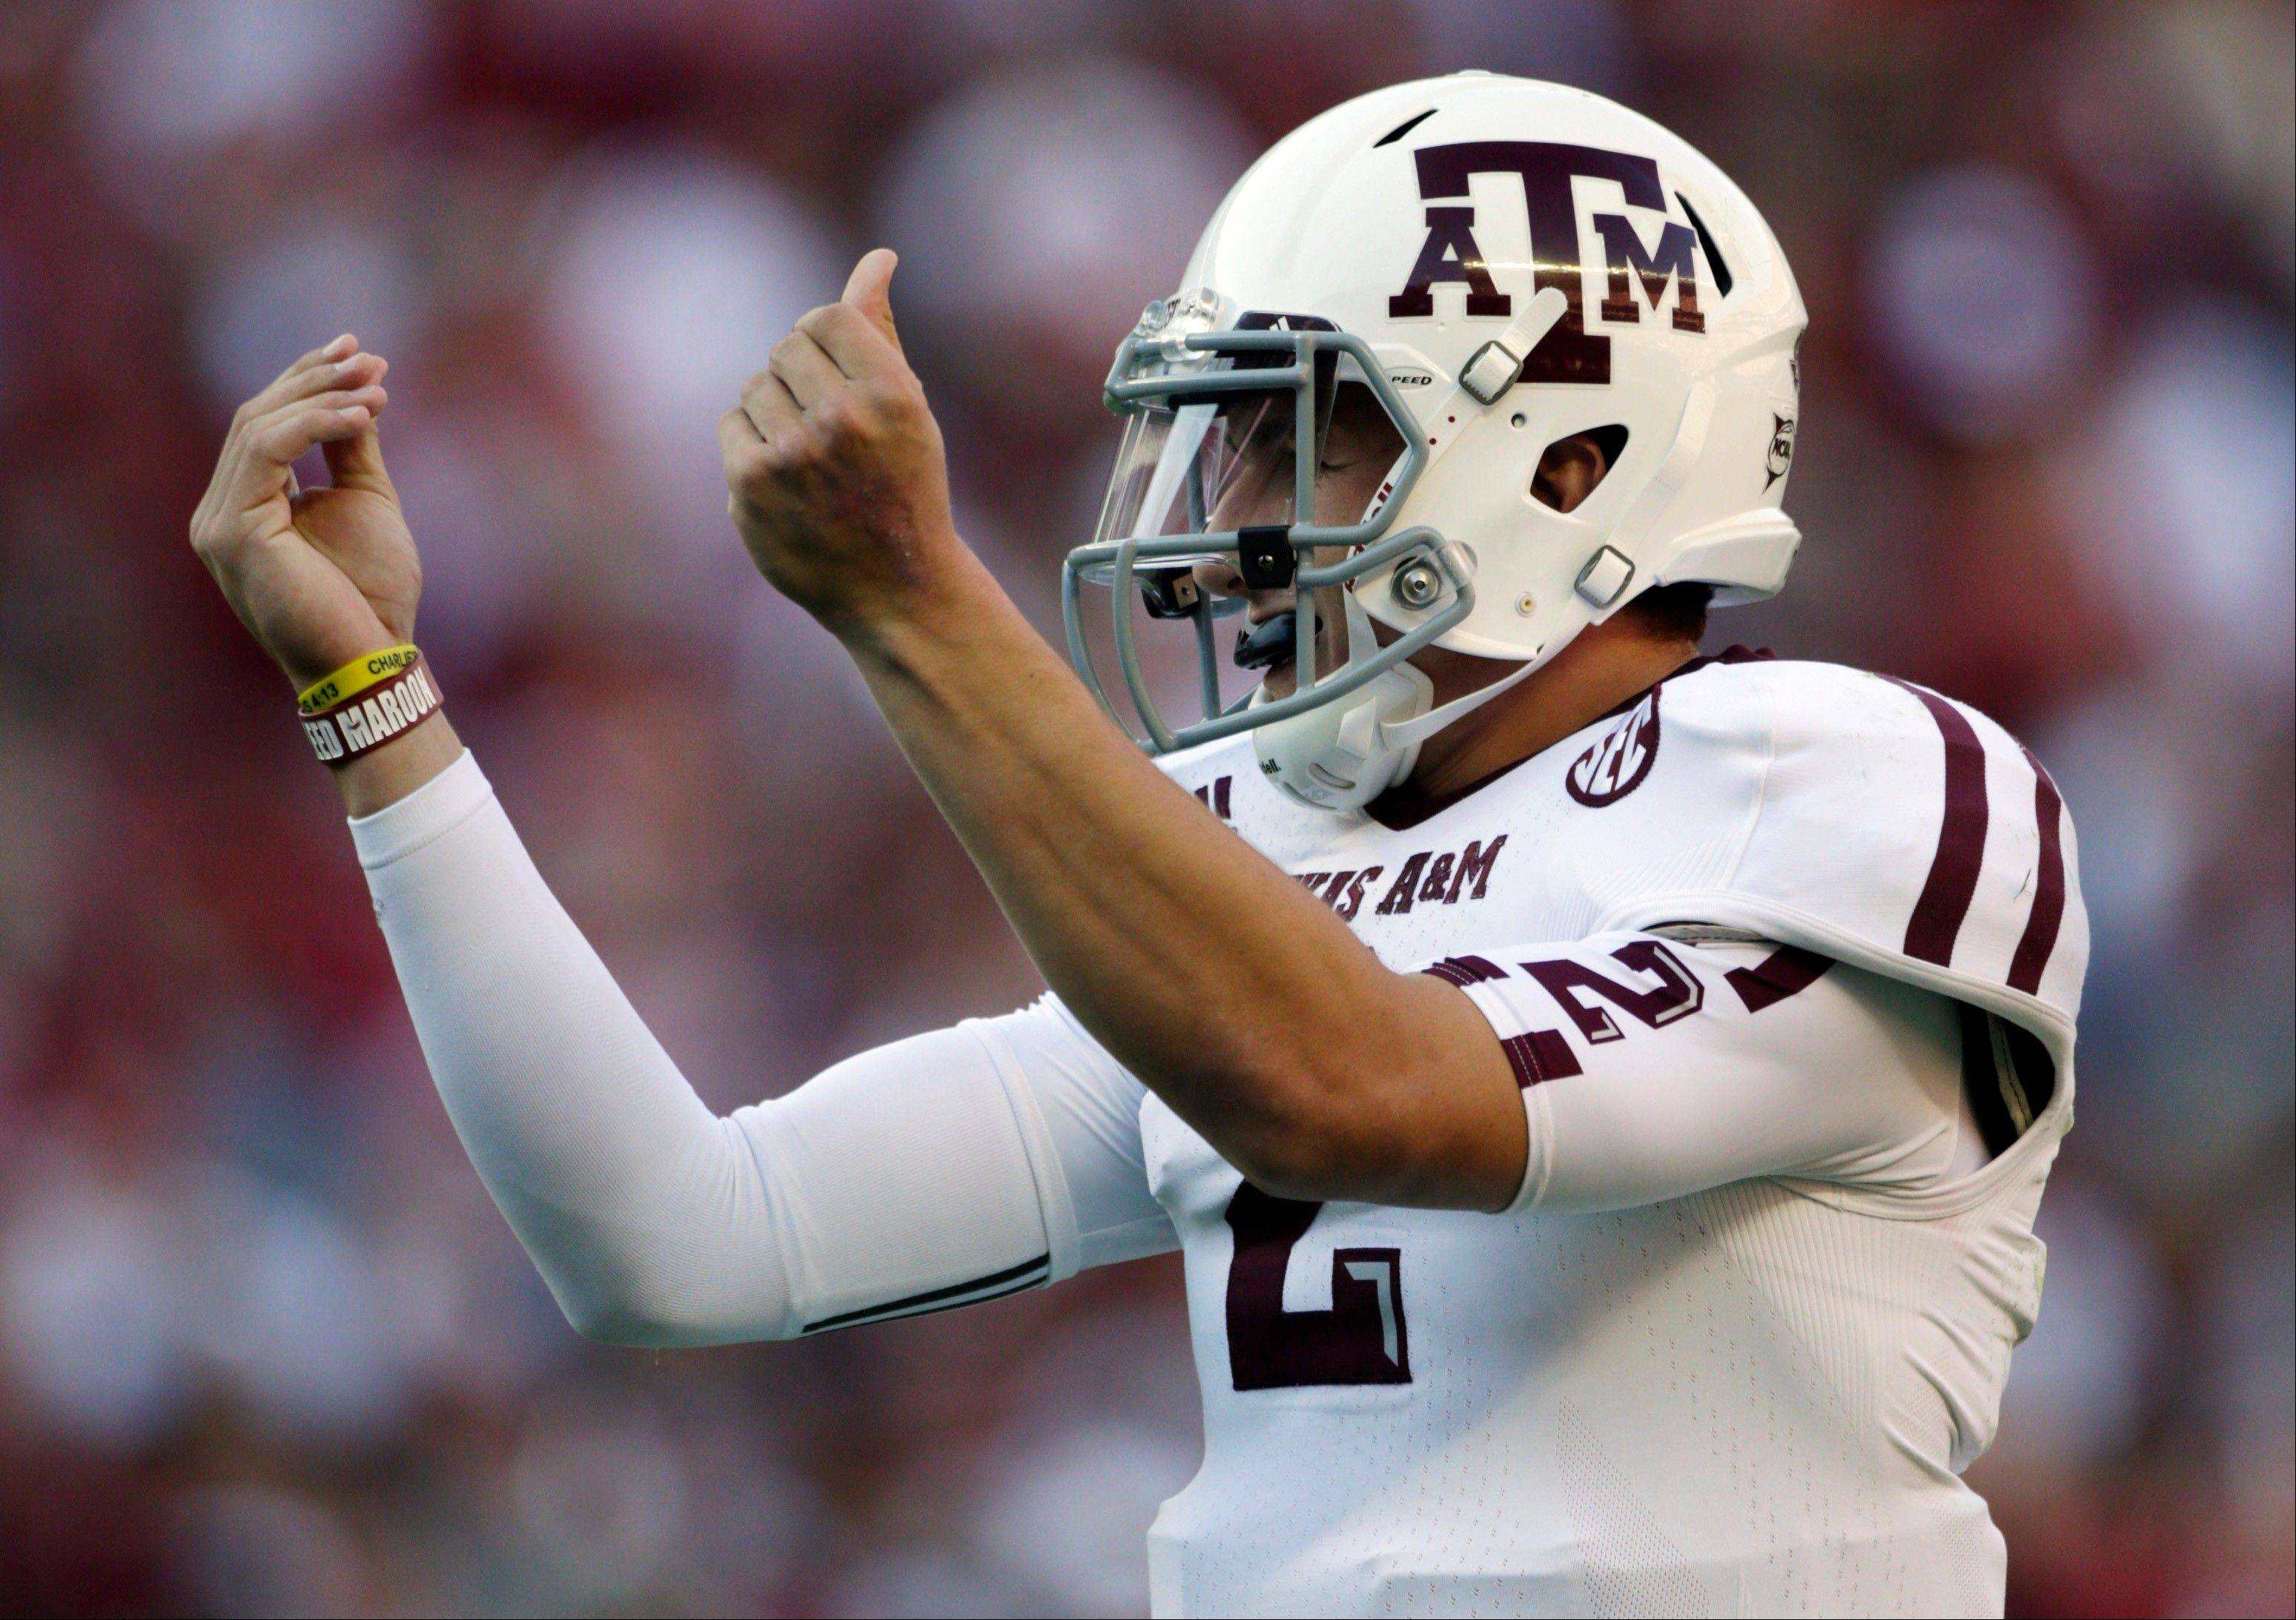 Manziel, No. 15 Texas A&M stun No. 1 Bama 29-24